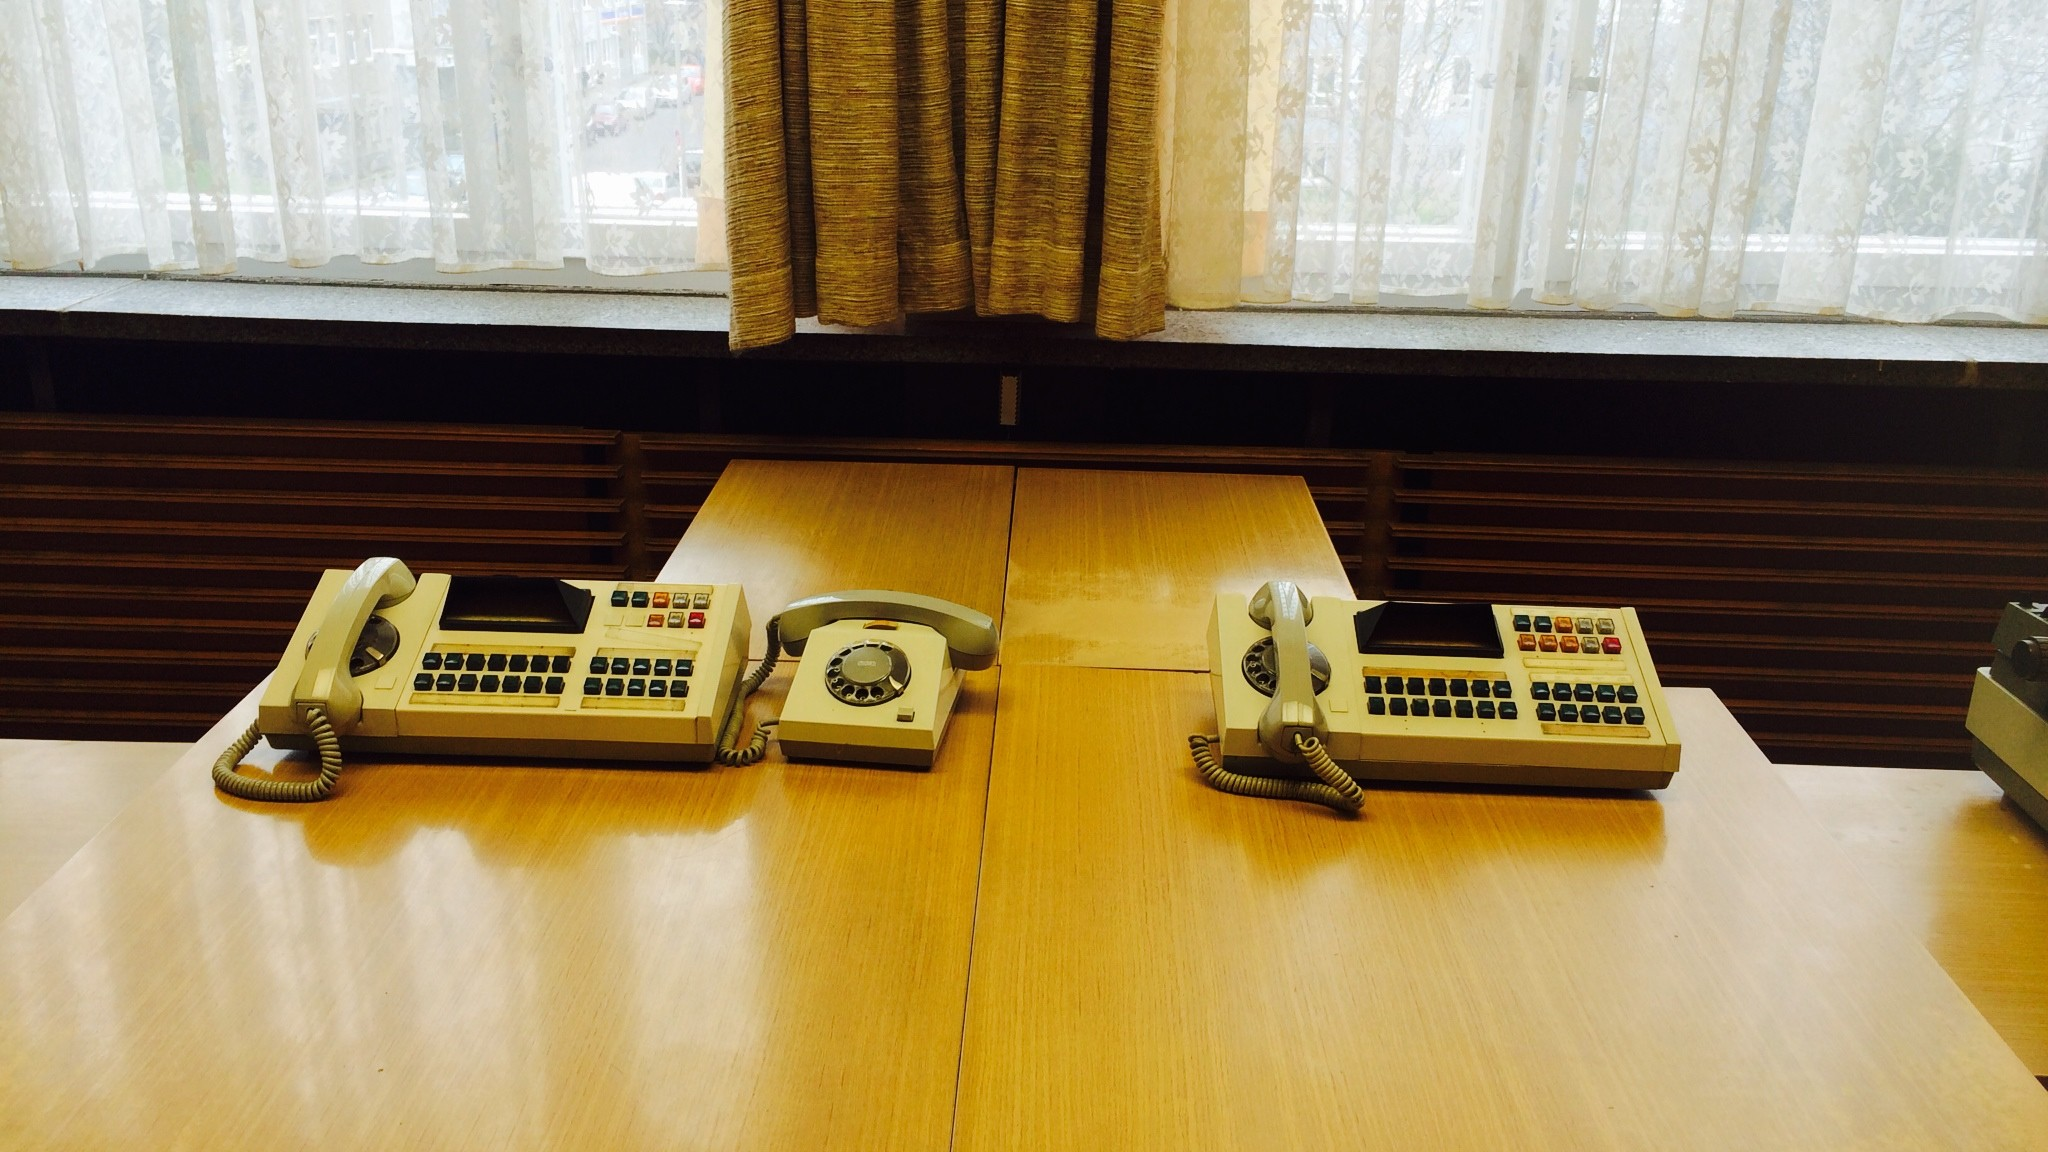 I Toured Stasi HQ with NSA Whistleblowers